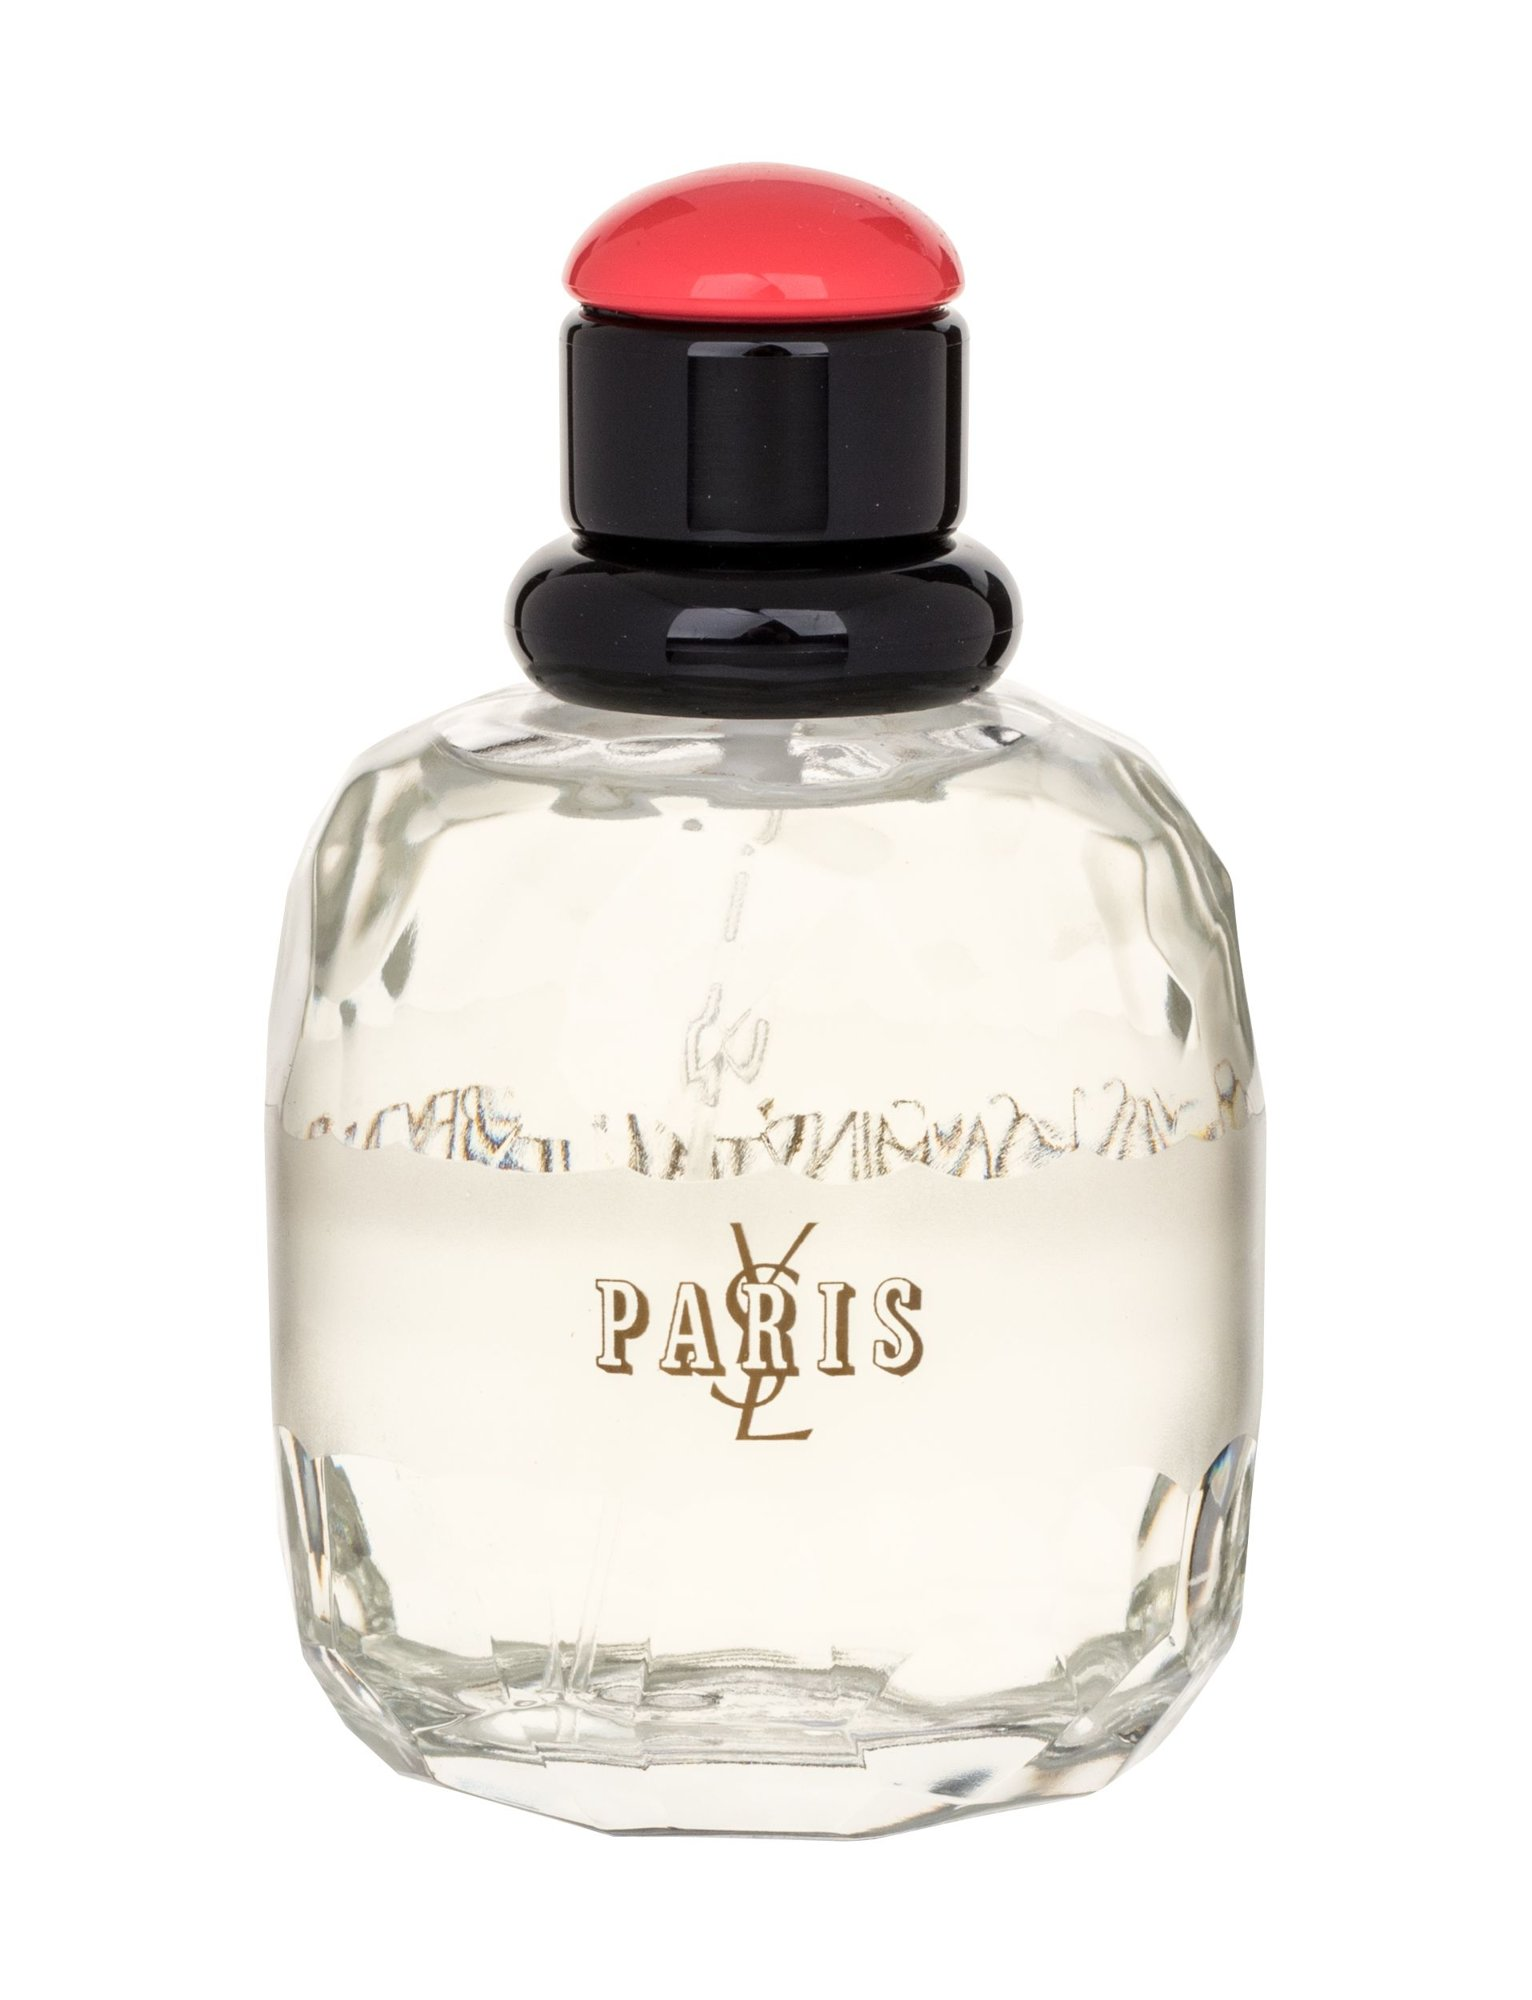 Yves Saint Laurent Paris EDT 125ml